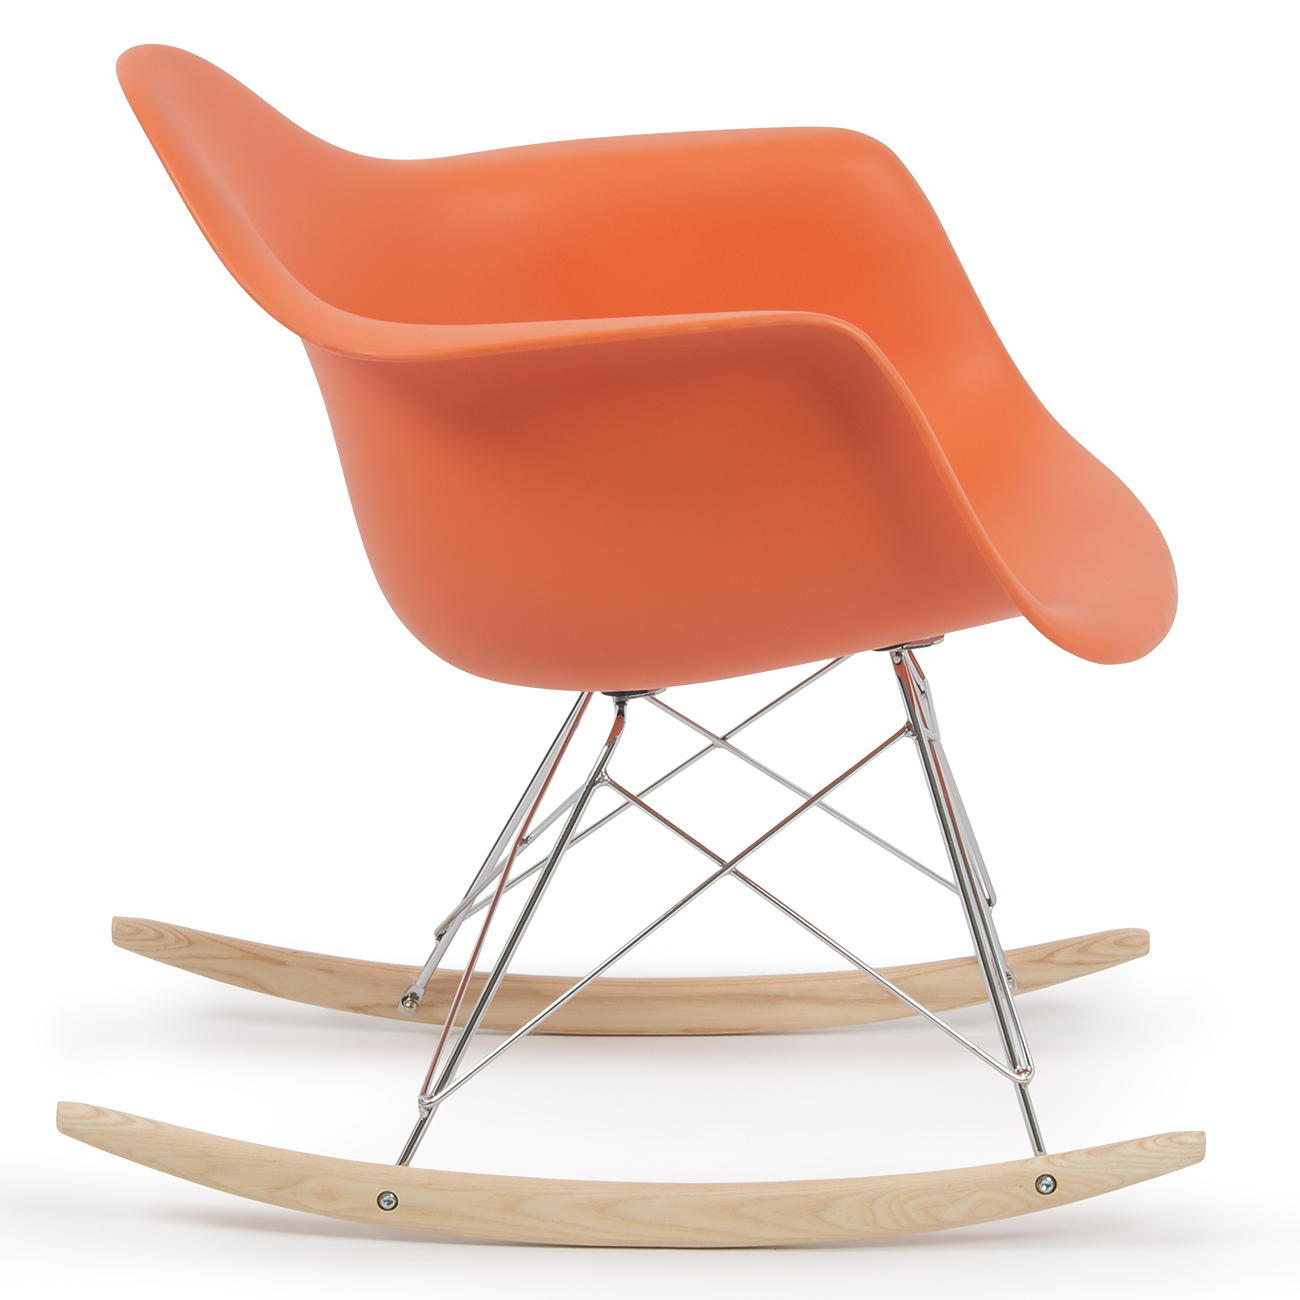 New eames rocker rocking indoor wood chair rar dsw style for Rocking chair dsw